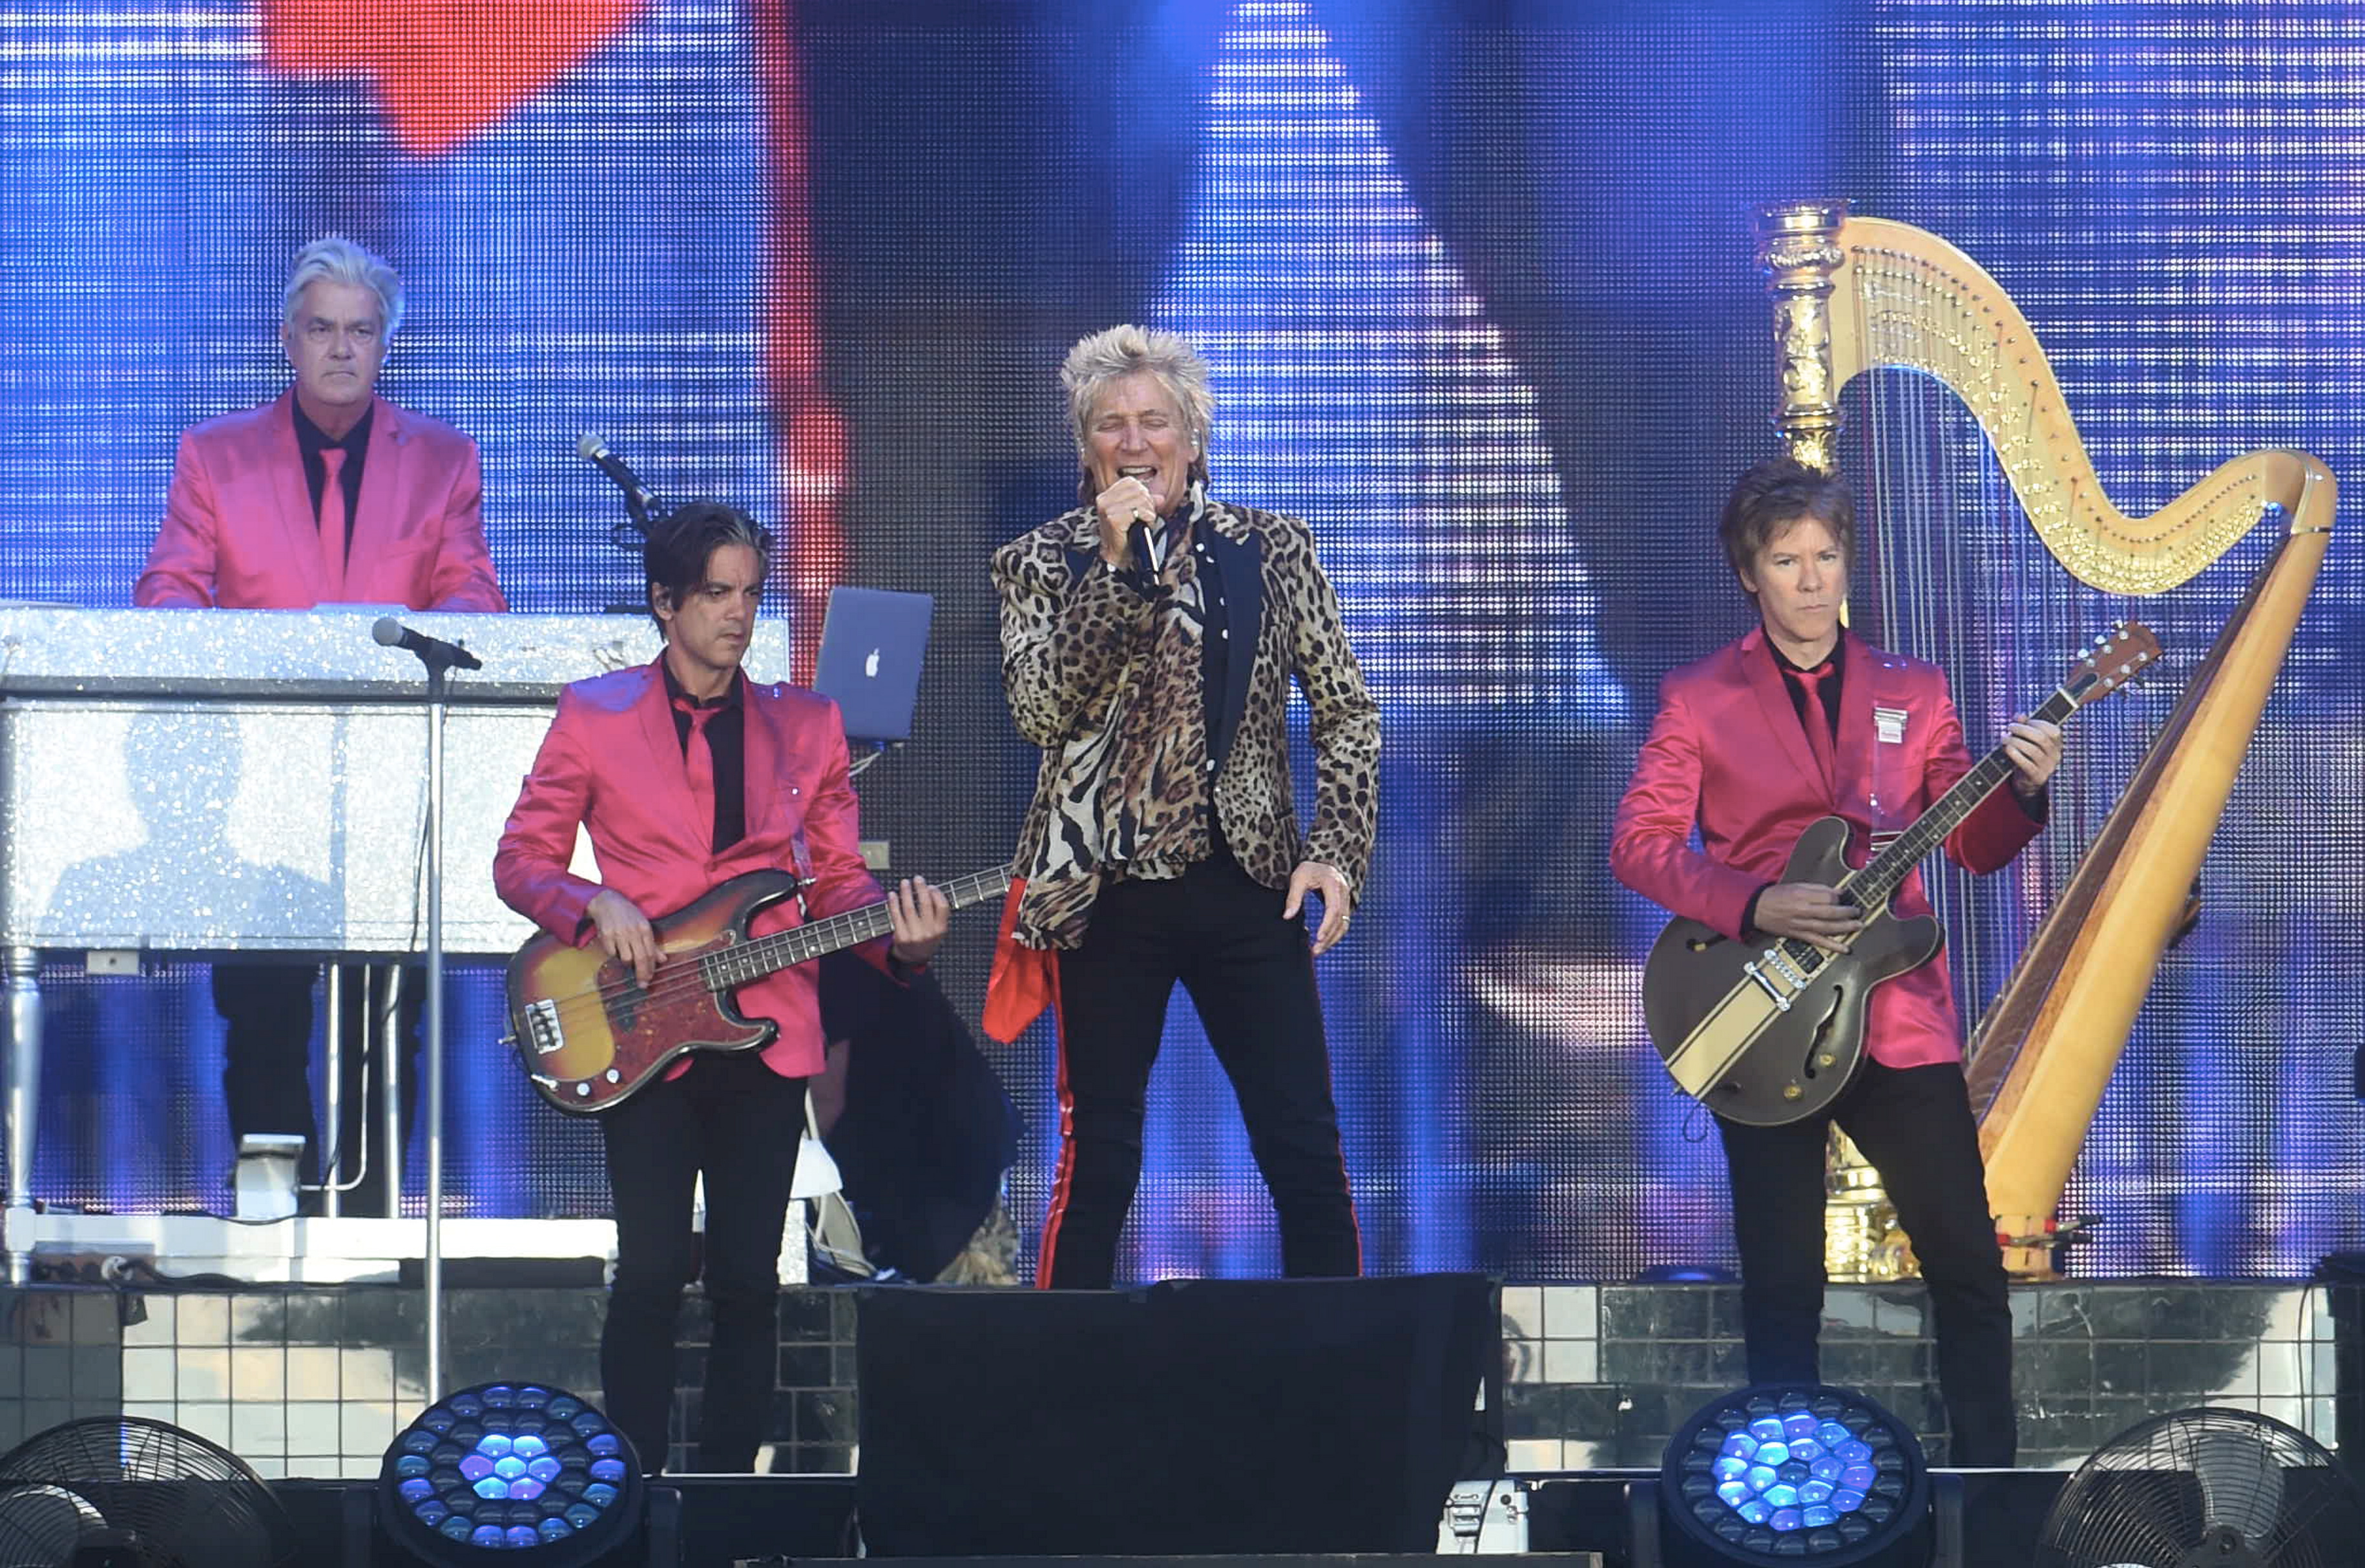 Rod Stewart wowed crowds at the AECC earlier this year.